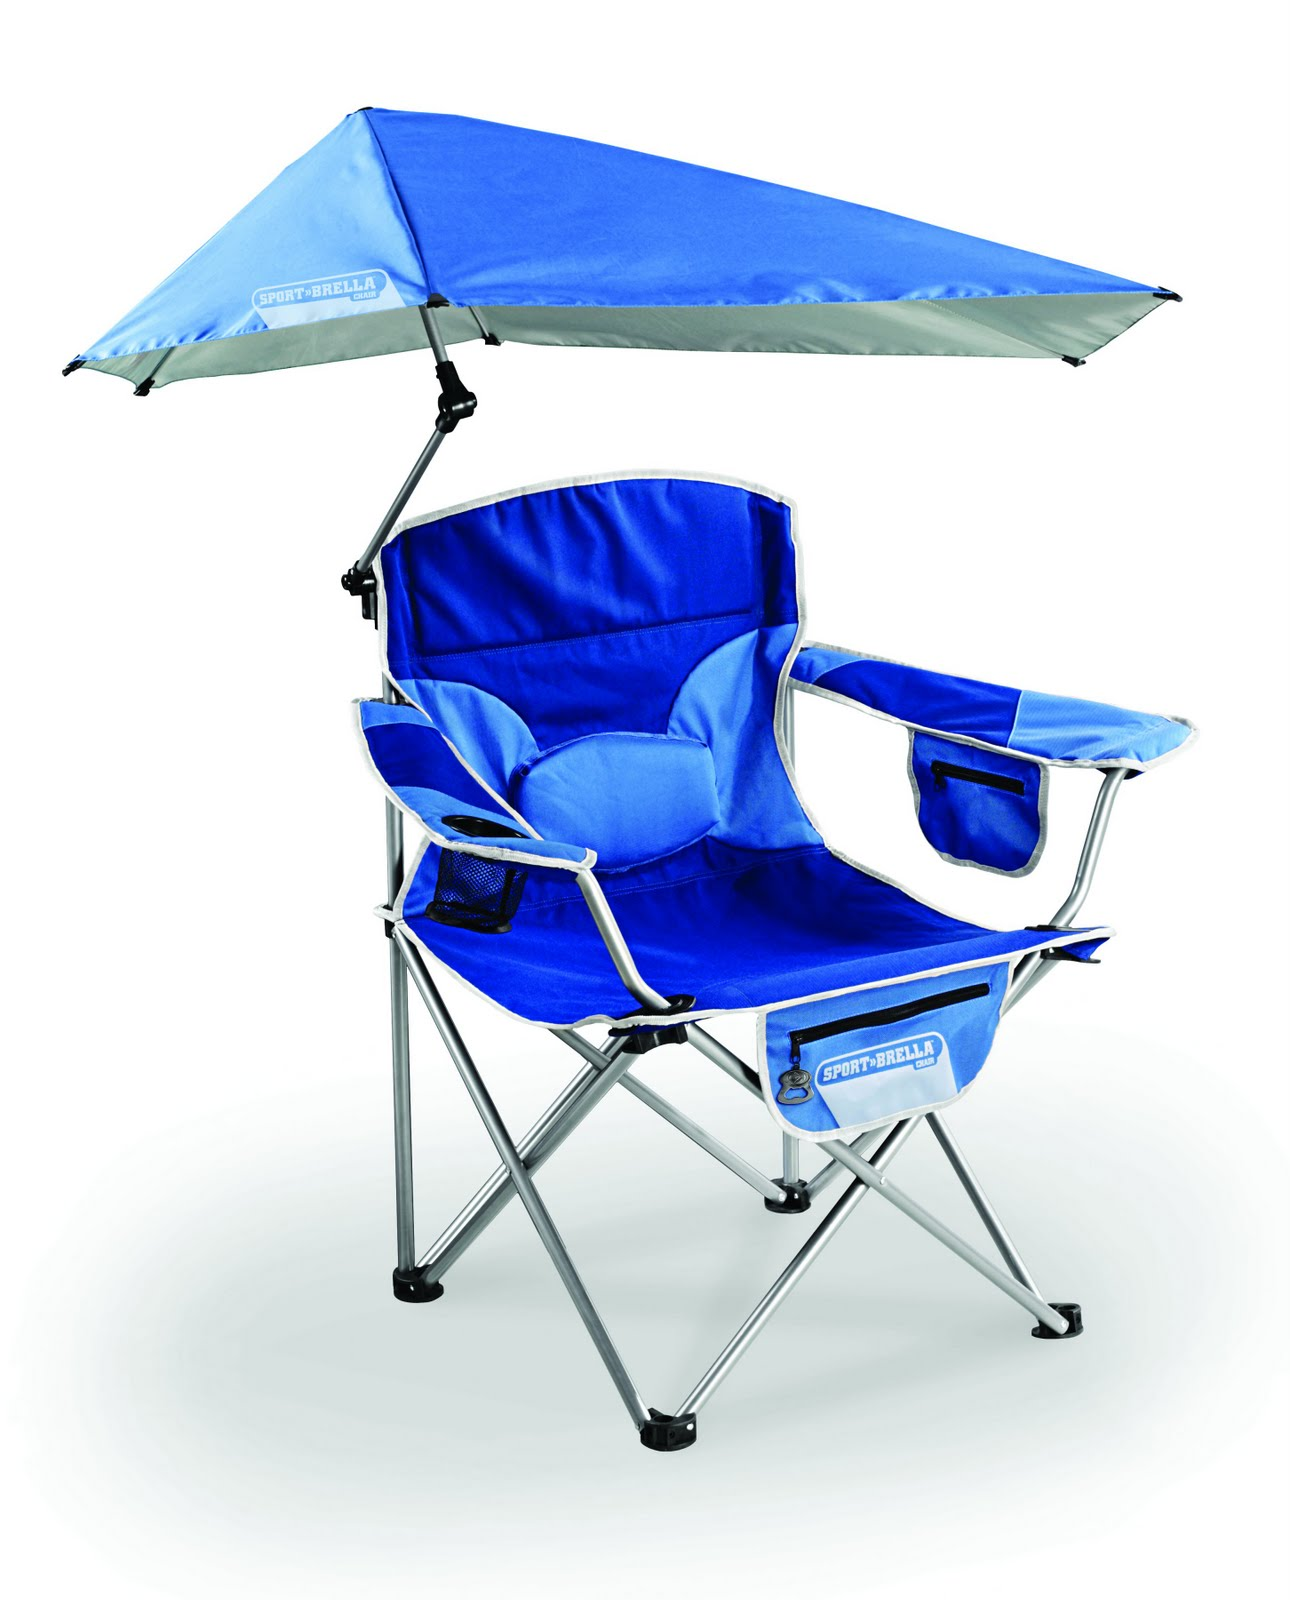 Sport Brella Chair Xtr The Sport Brella Chair by